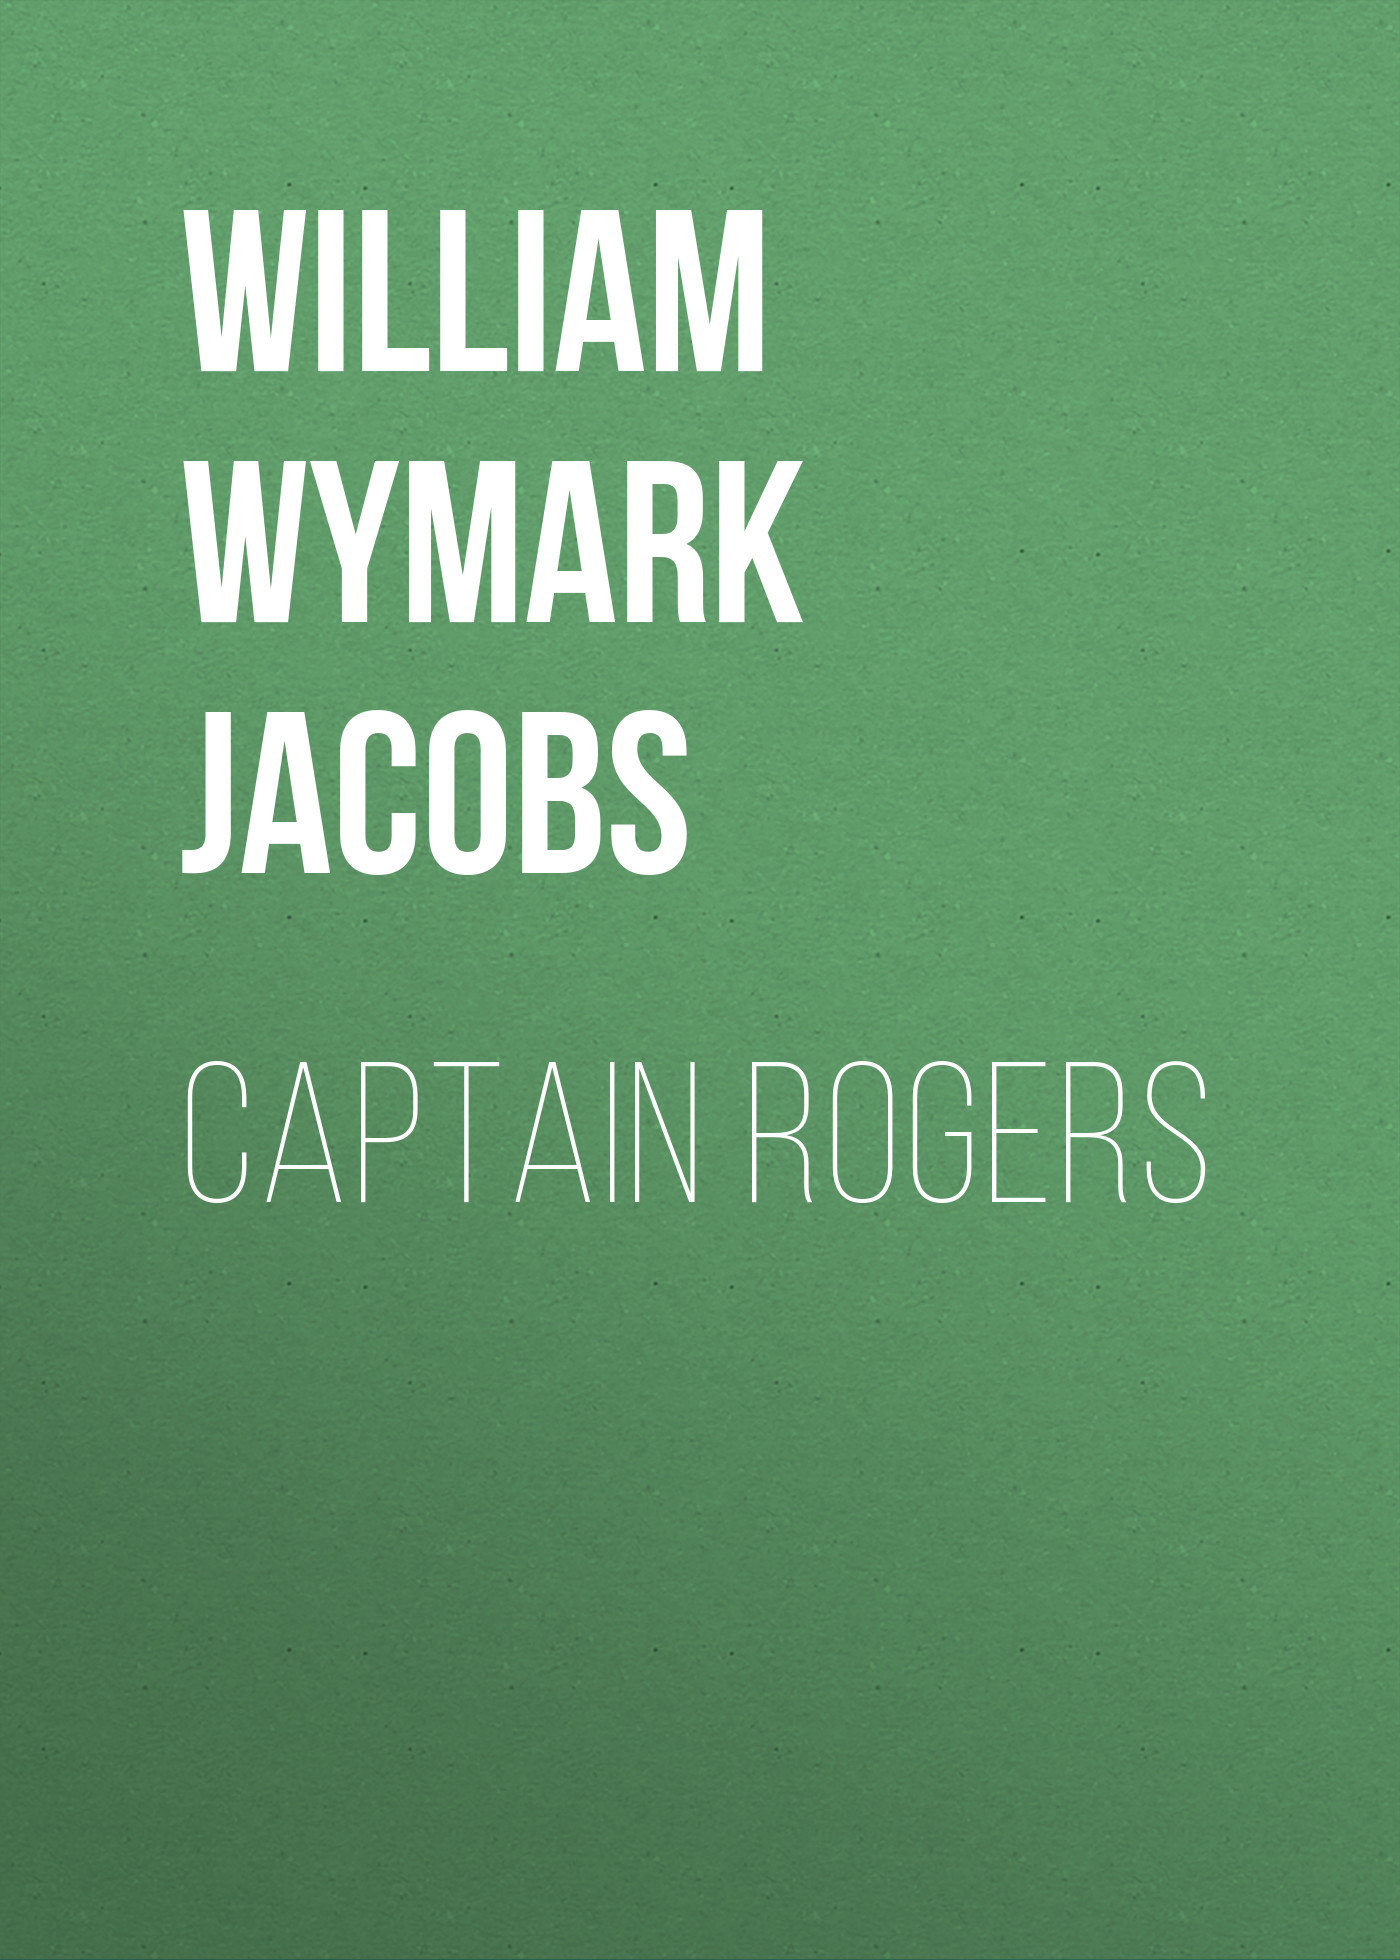 William Wymark Jacobs Captain Rogers